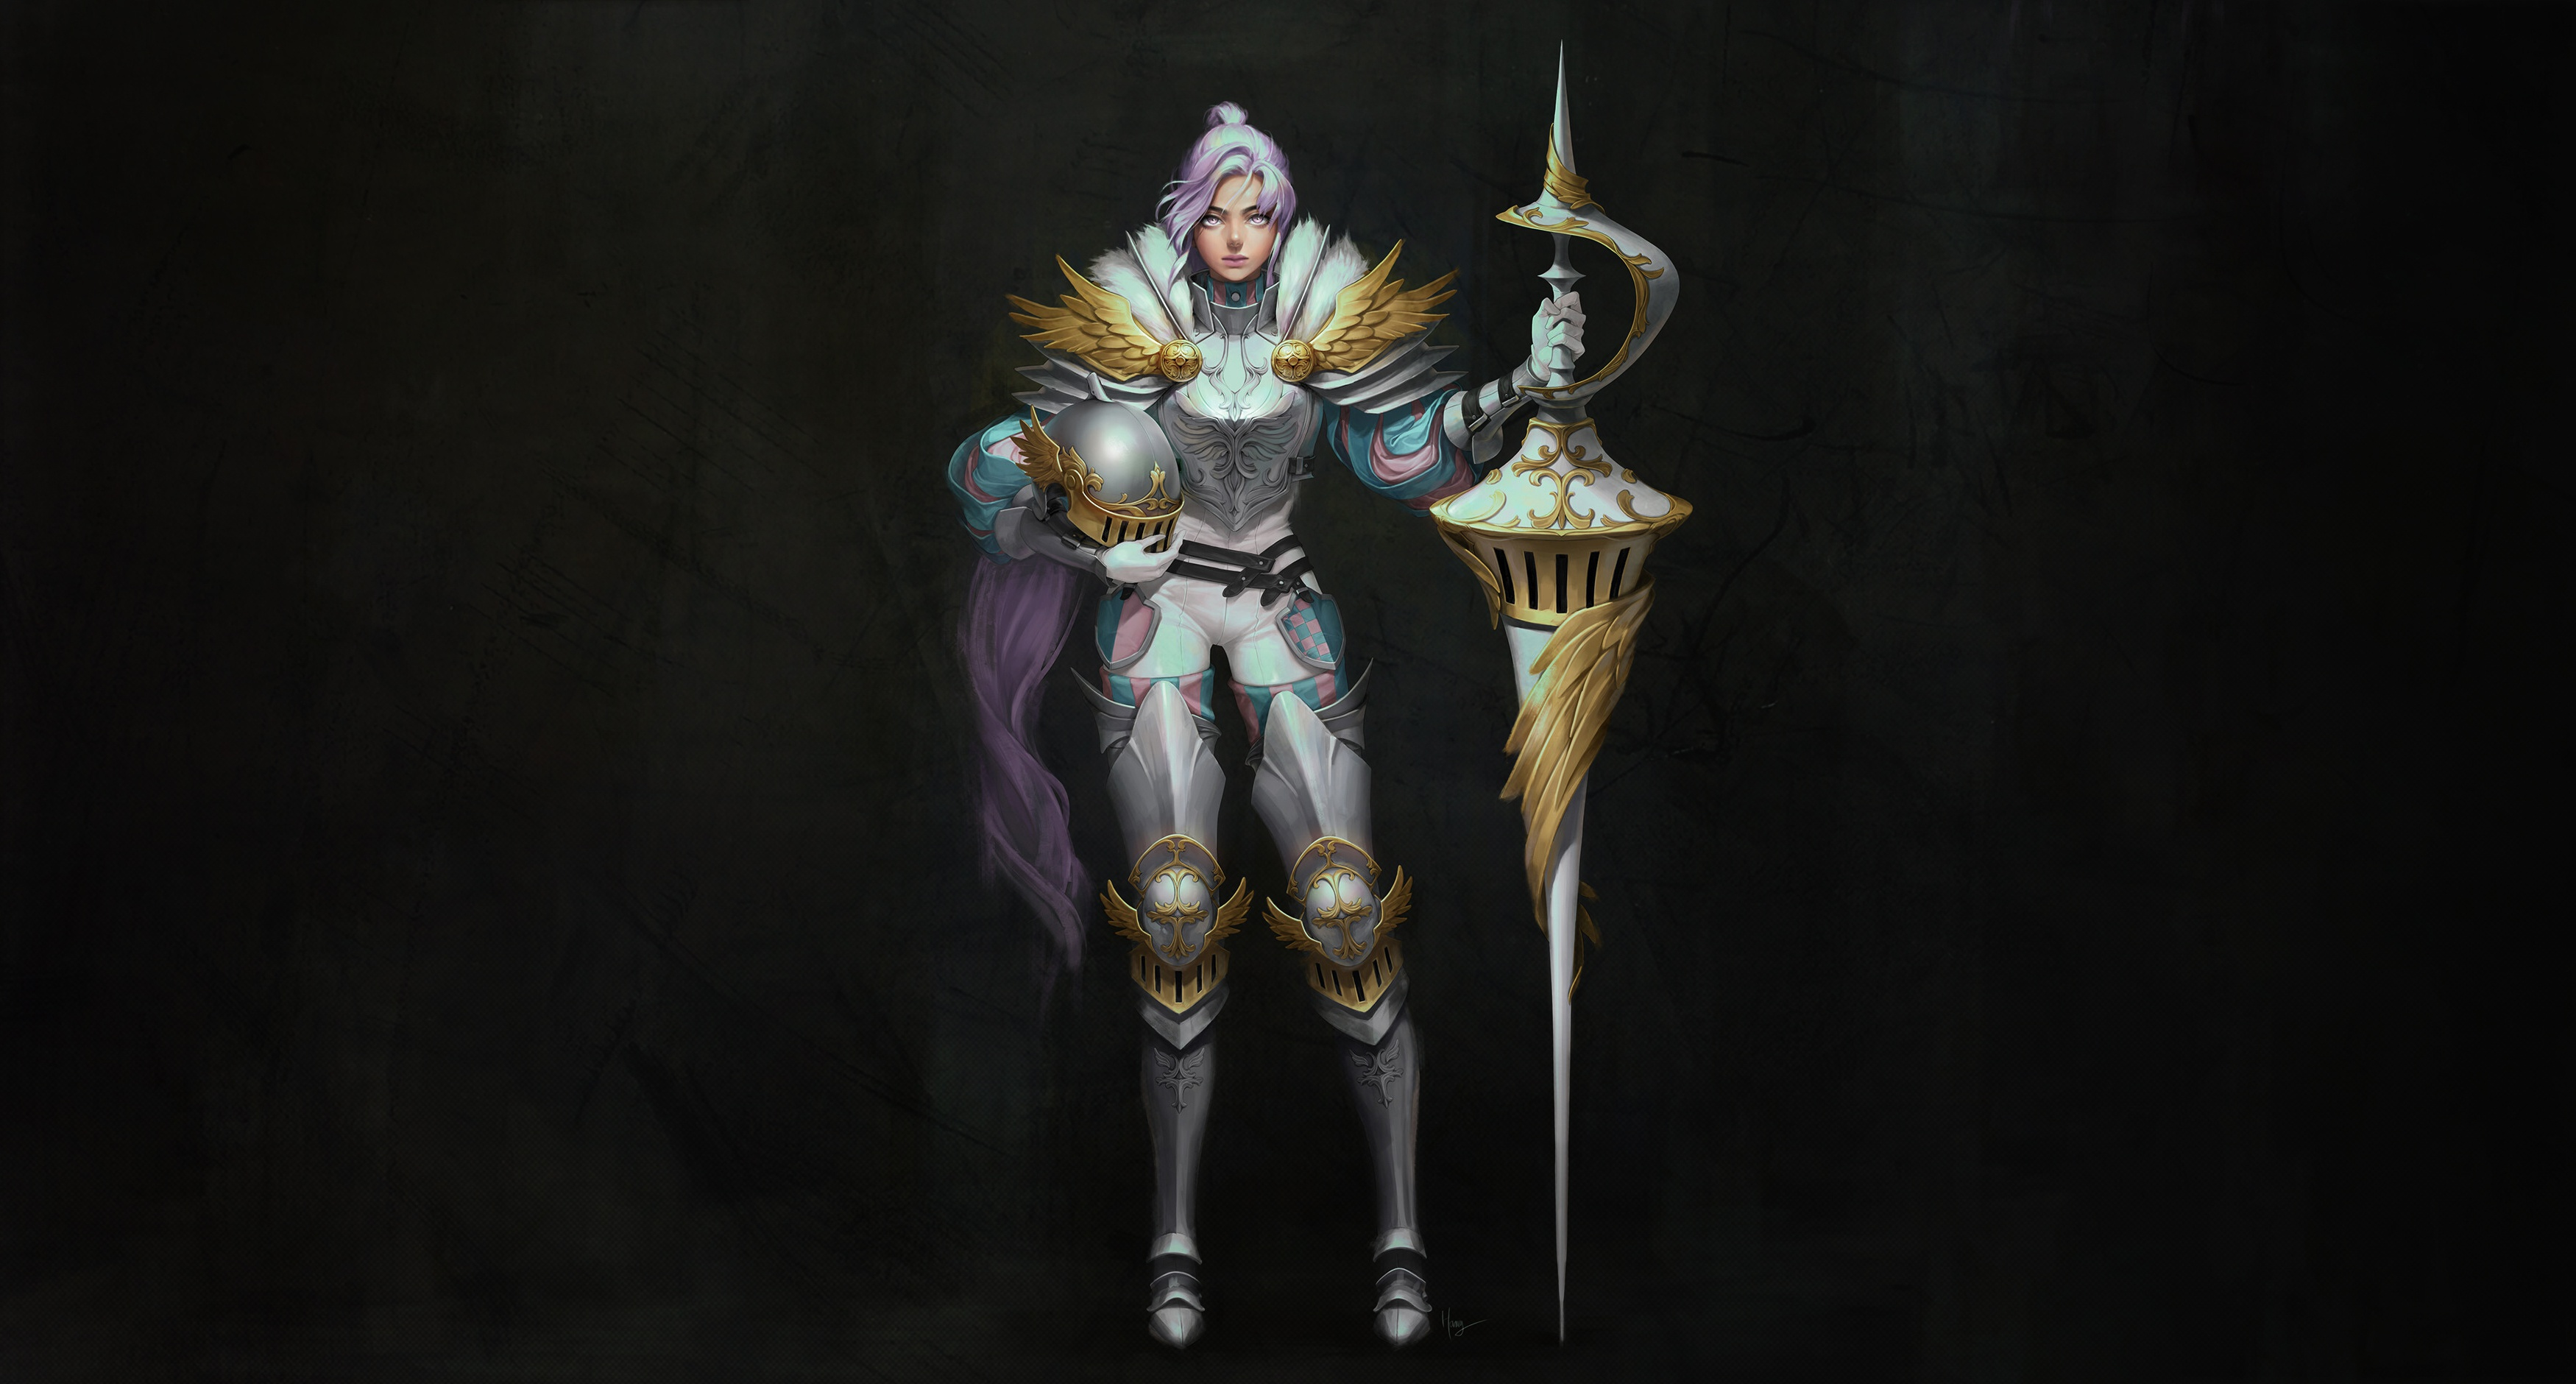 General 3500x1880 simple background black background fantasy art Armored fantasy girl knight